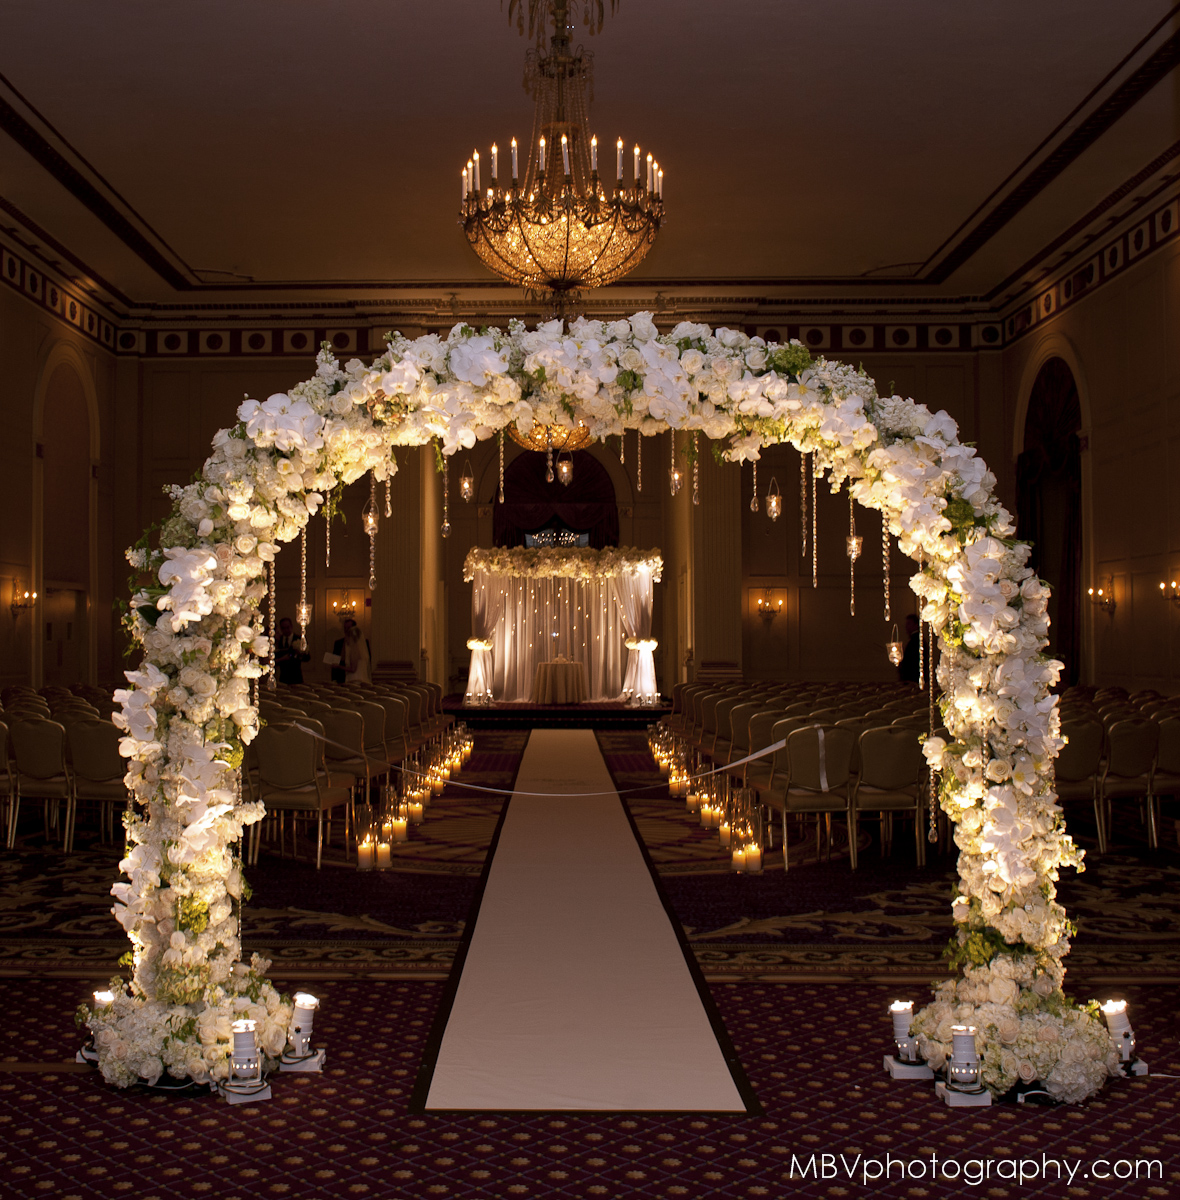 The Aisle Decor for the Wedding by Tantawan Bloom New York